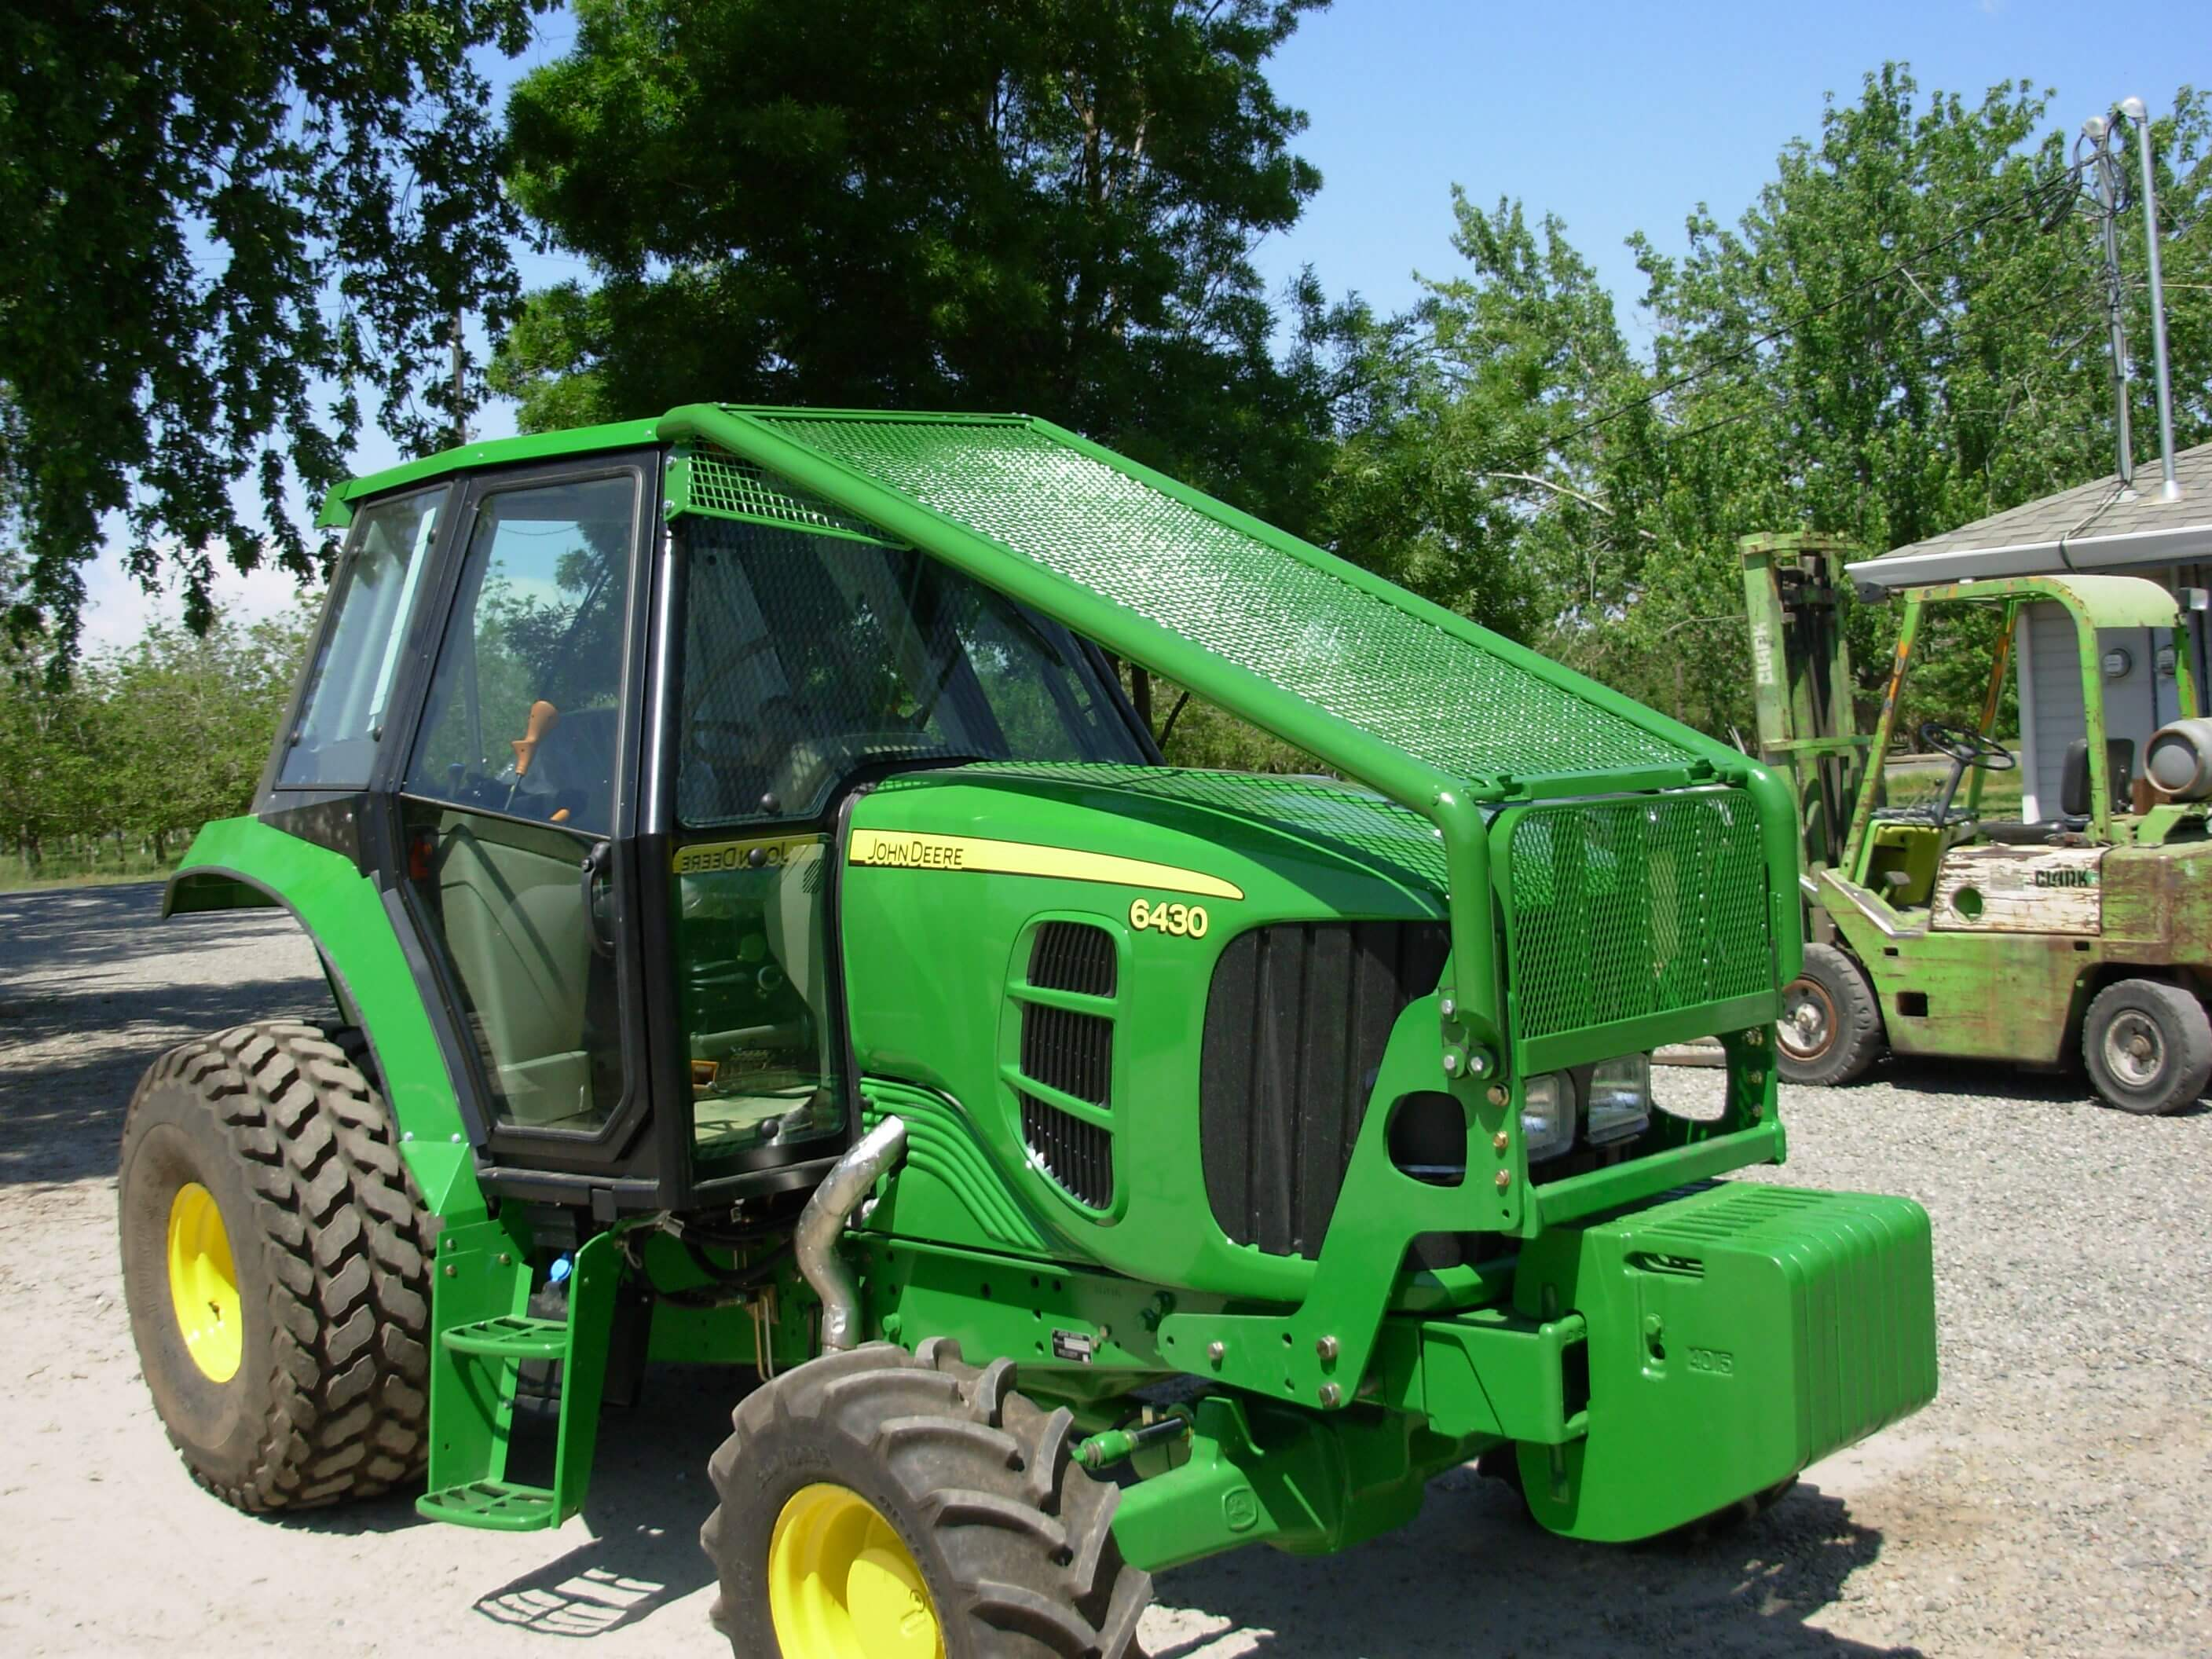 5055e Tractor Brush Guard : Unruh manufacturing